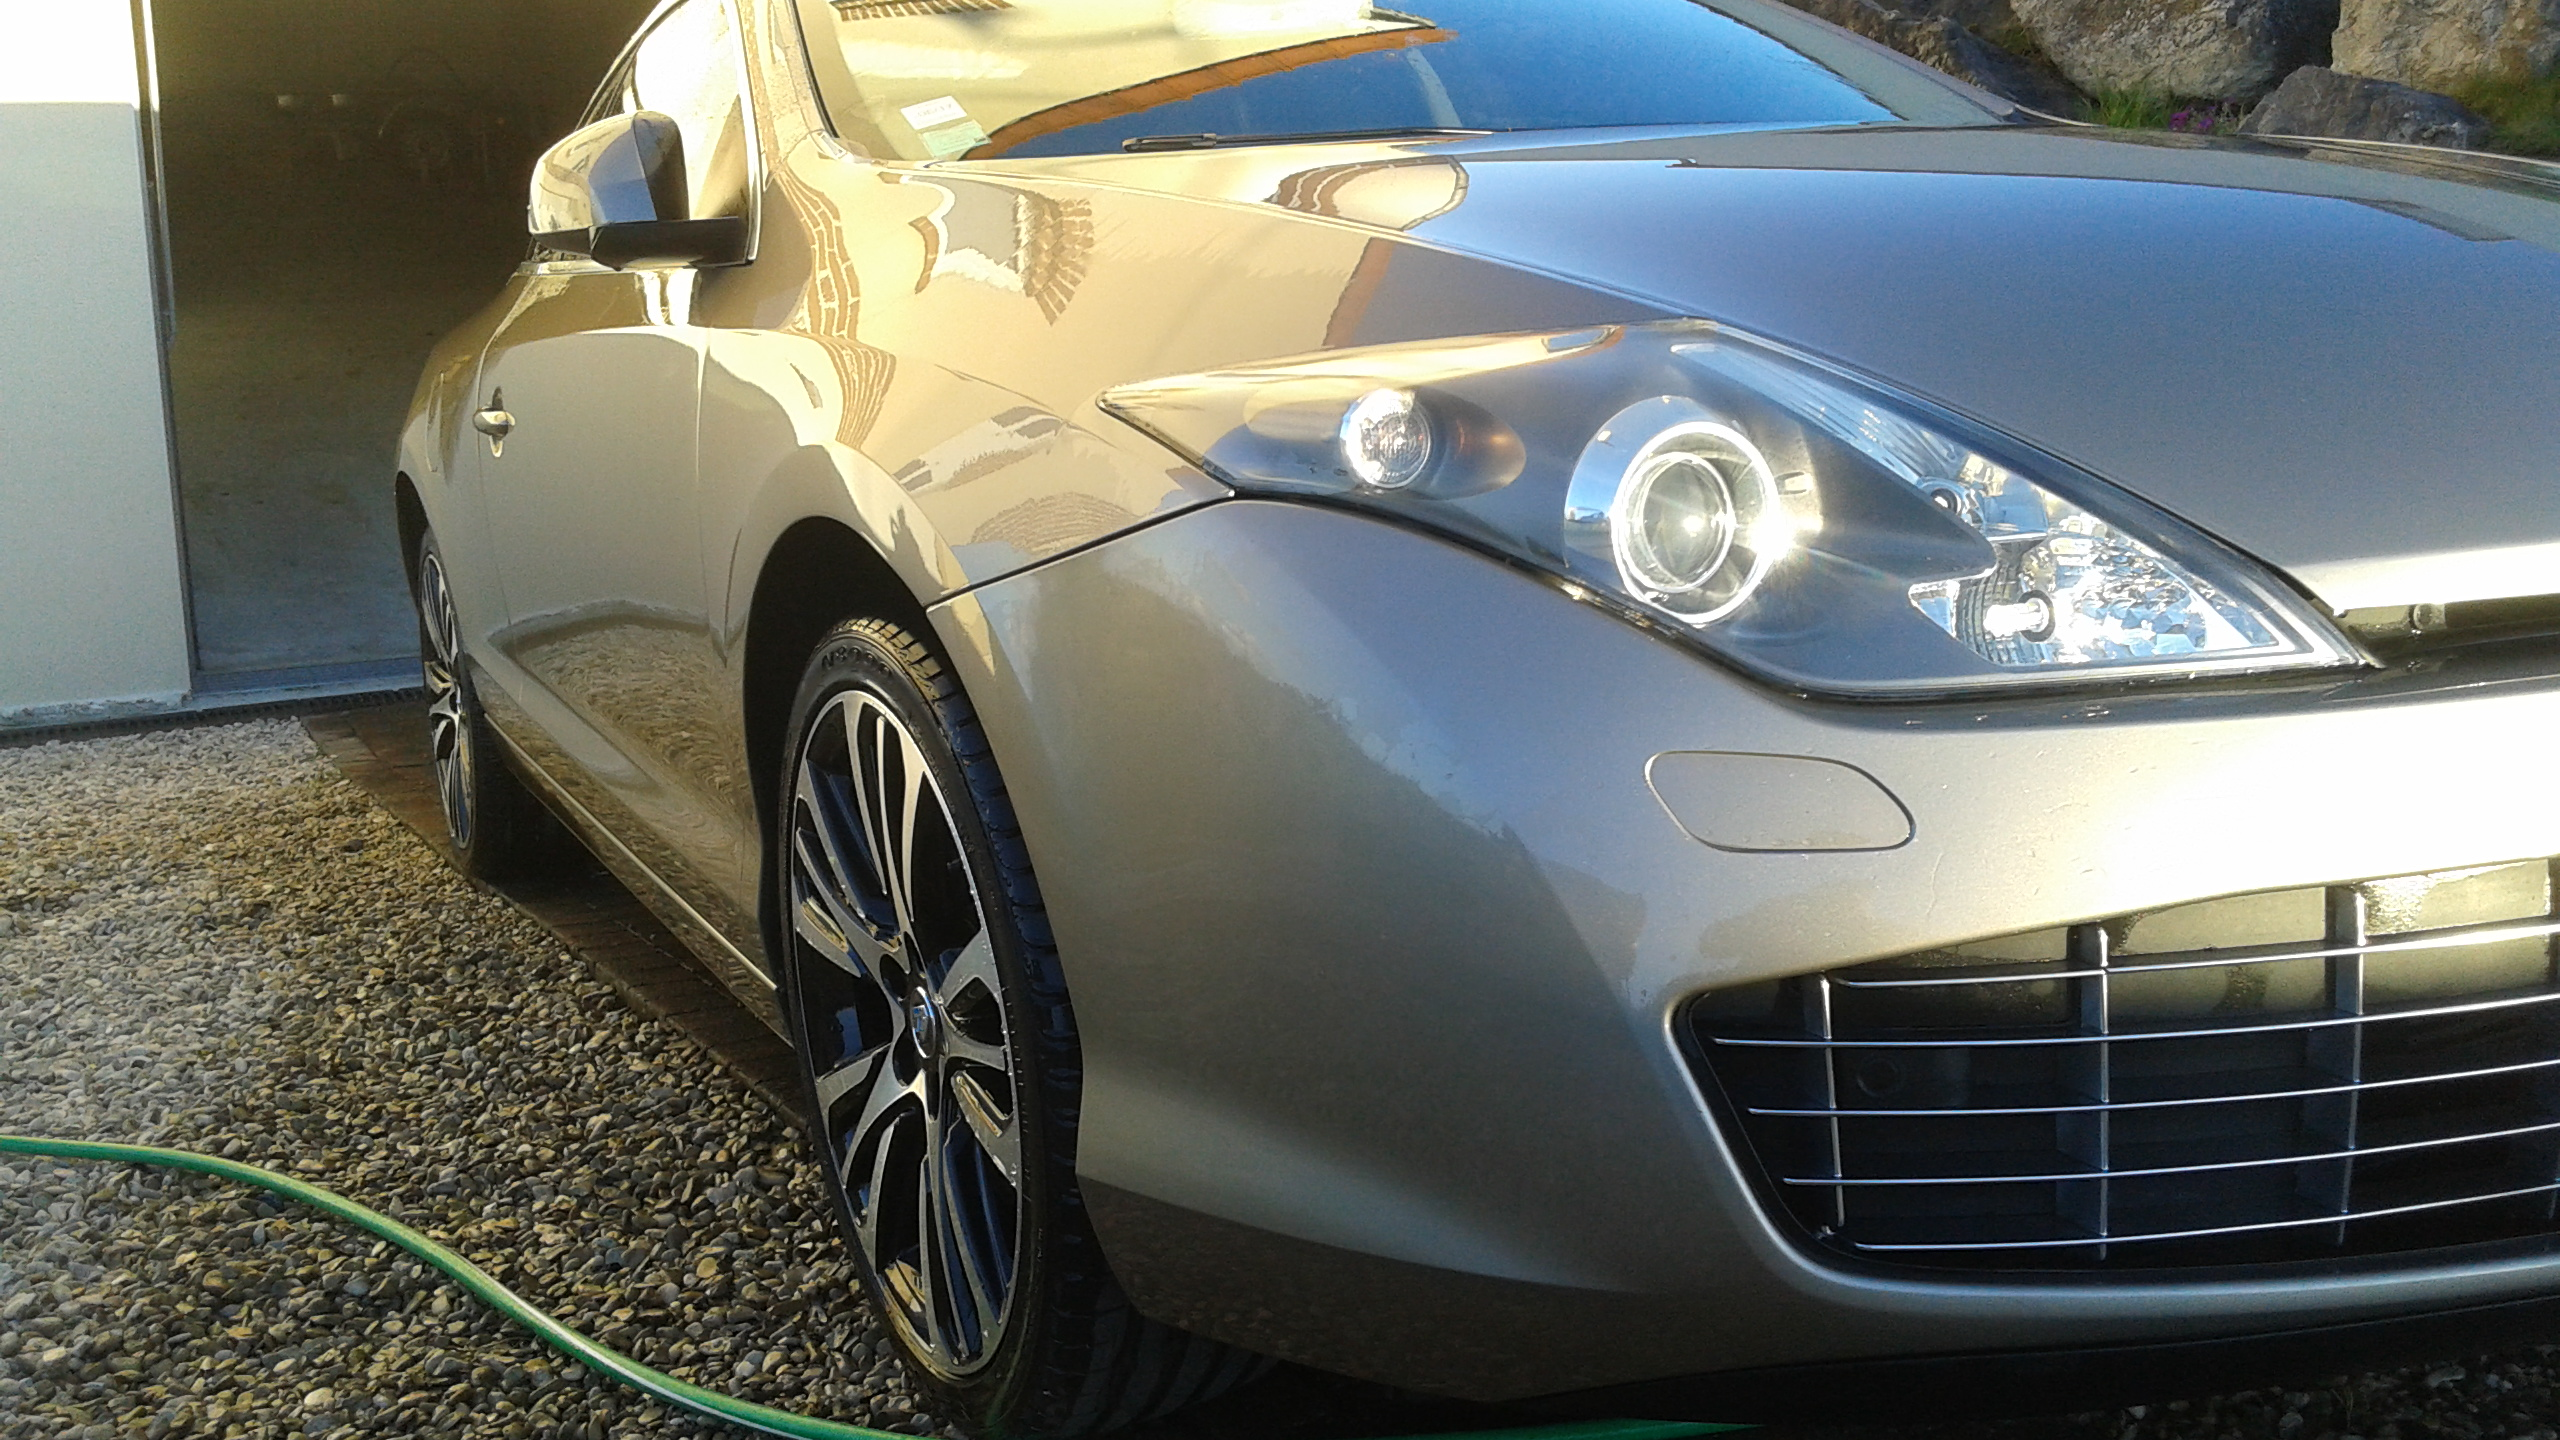 [nathanjo] Laguna III coupé initiale 3.0 dCi 235 - Page 5 20160417195057